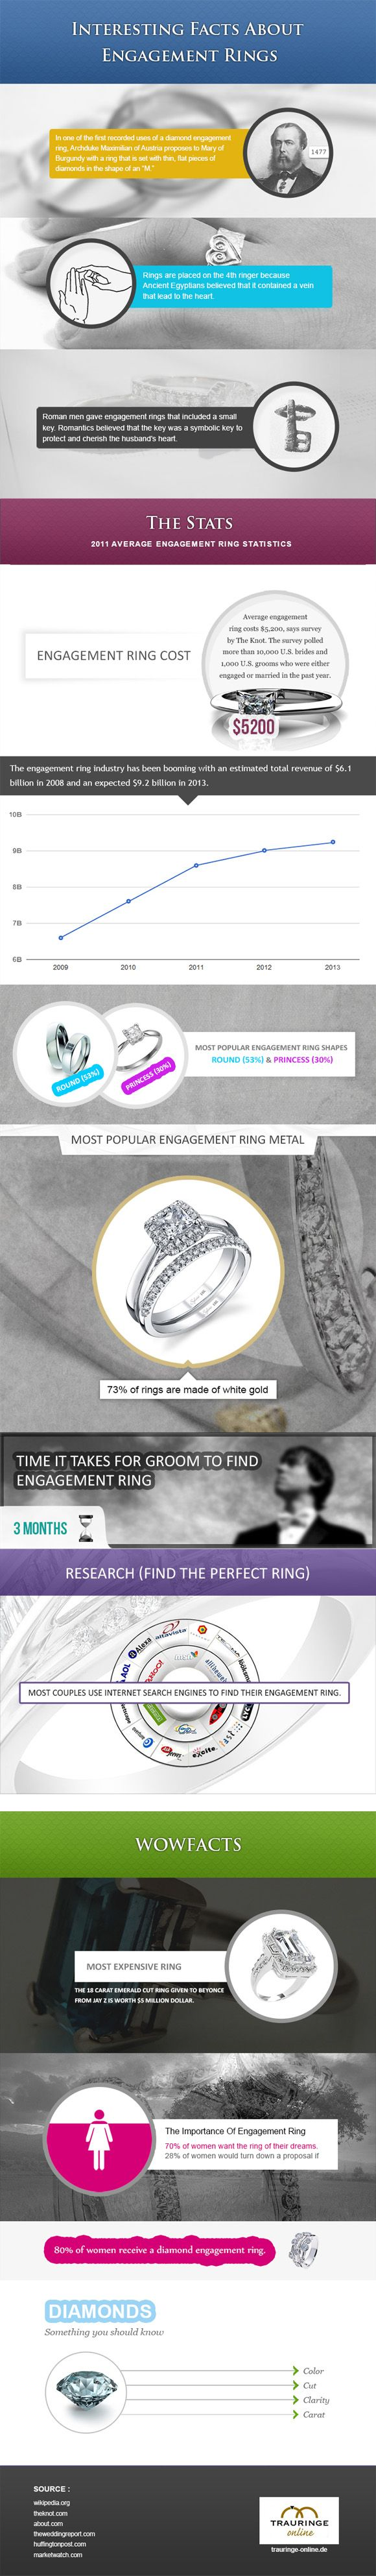 Wedding Engagement Rings: How To Select the Best Wedding Ring